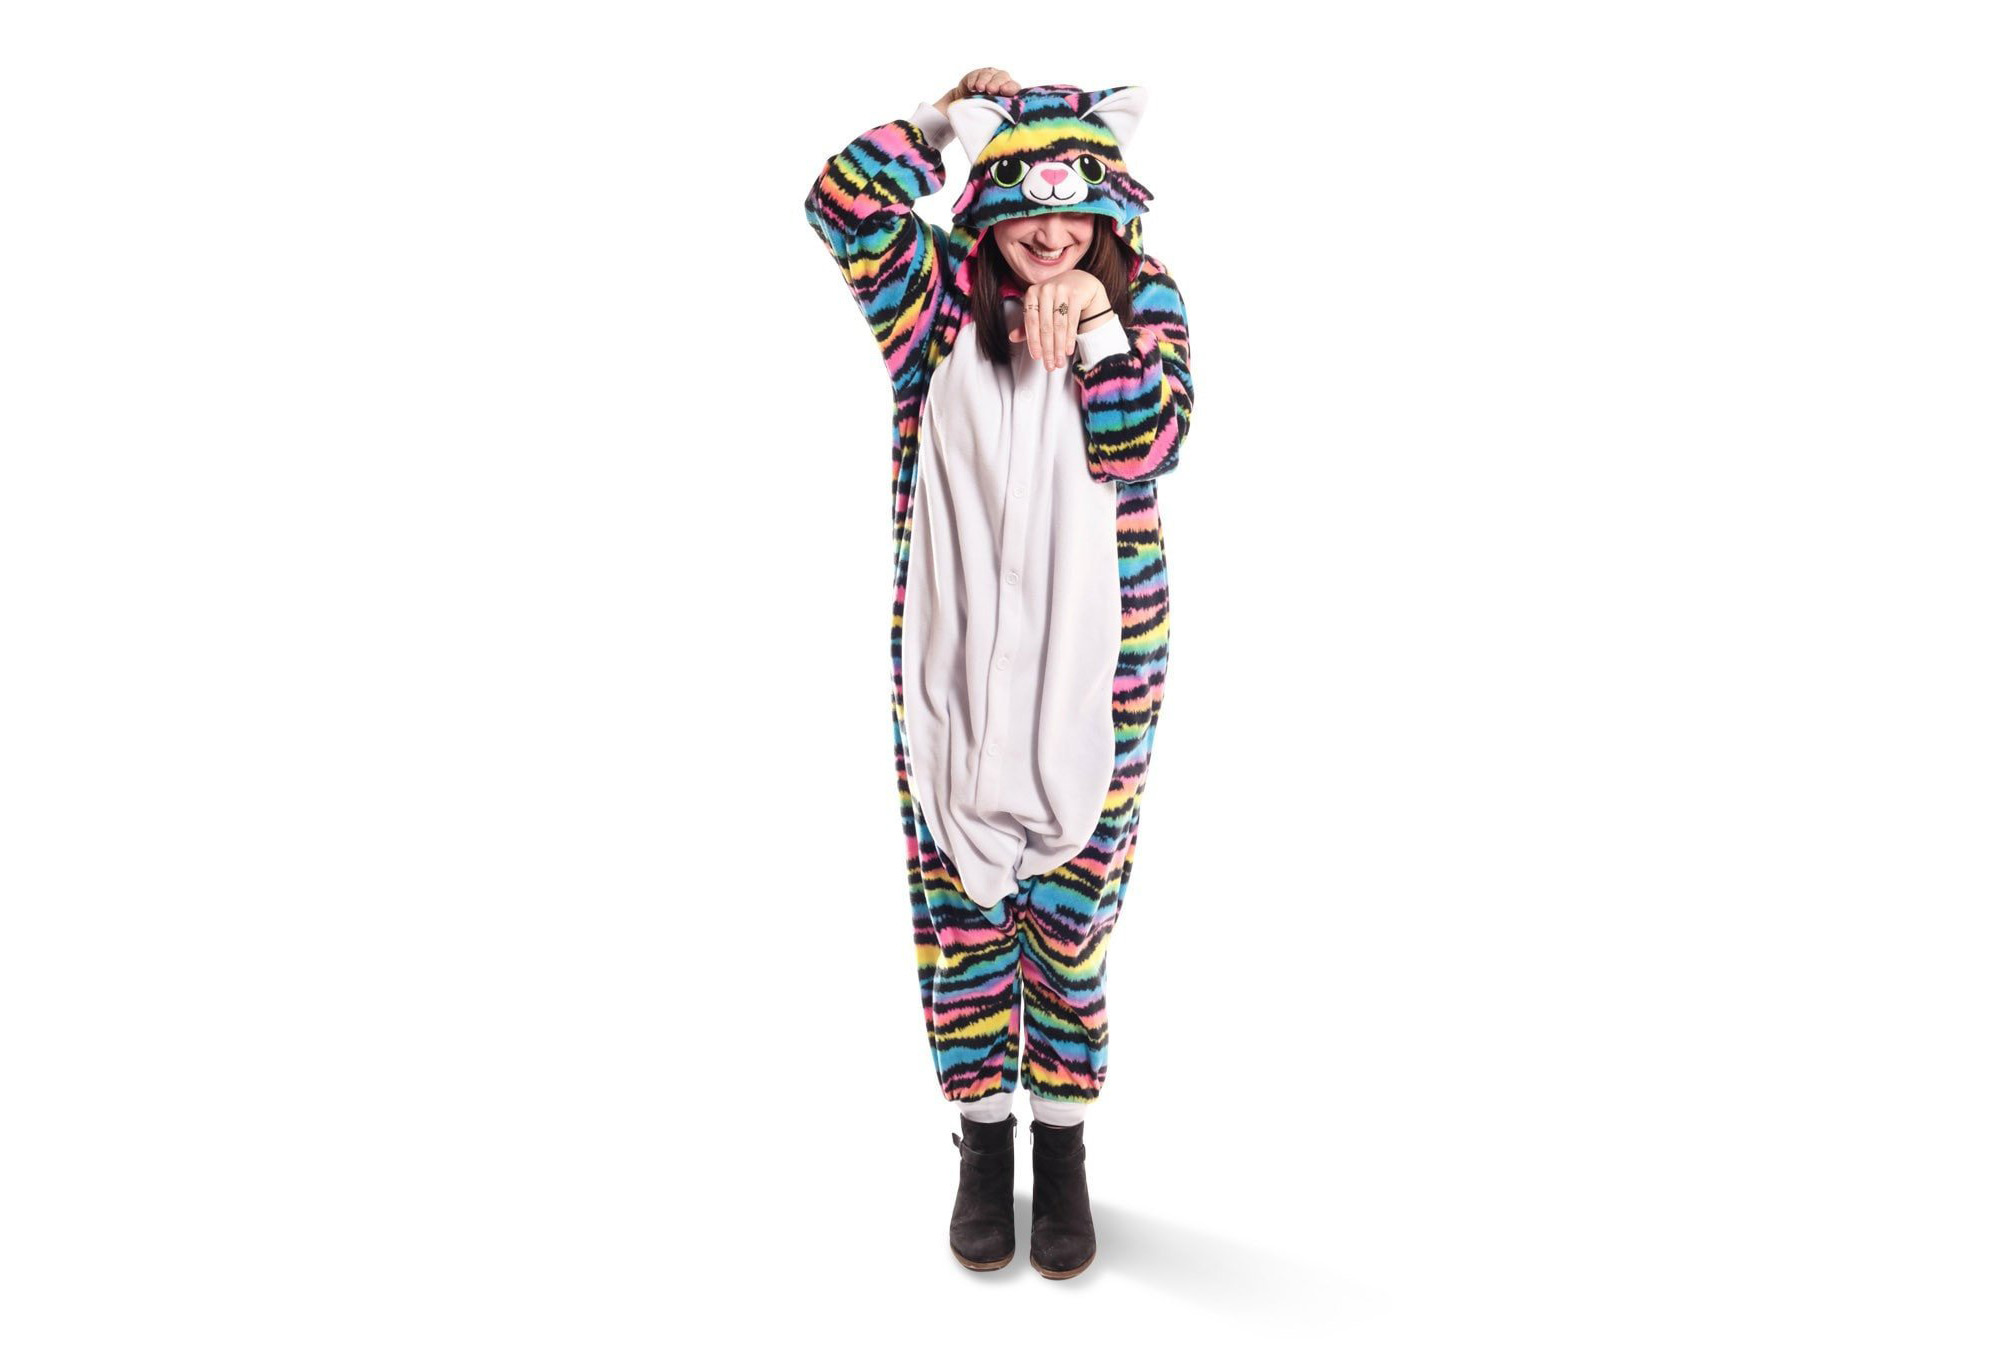 Three Wild Kigurumi Onesies That Will Make Perfect Gifts This Holiday Season